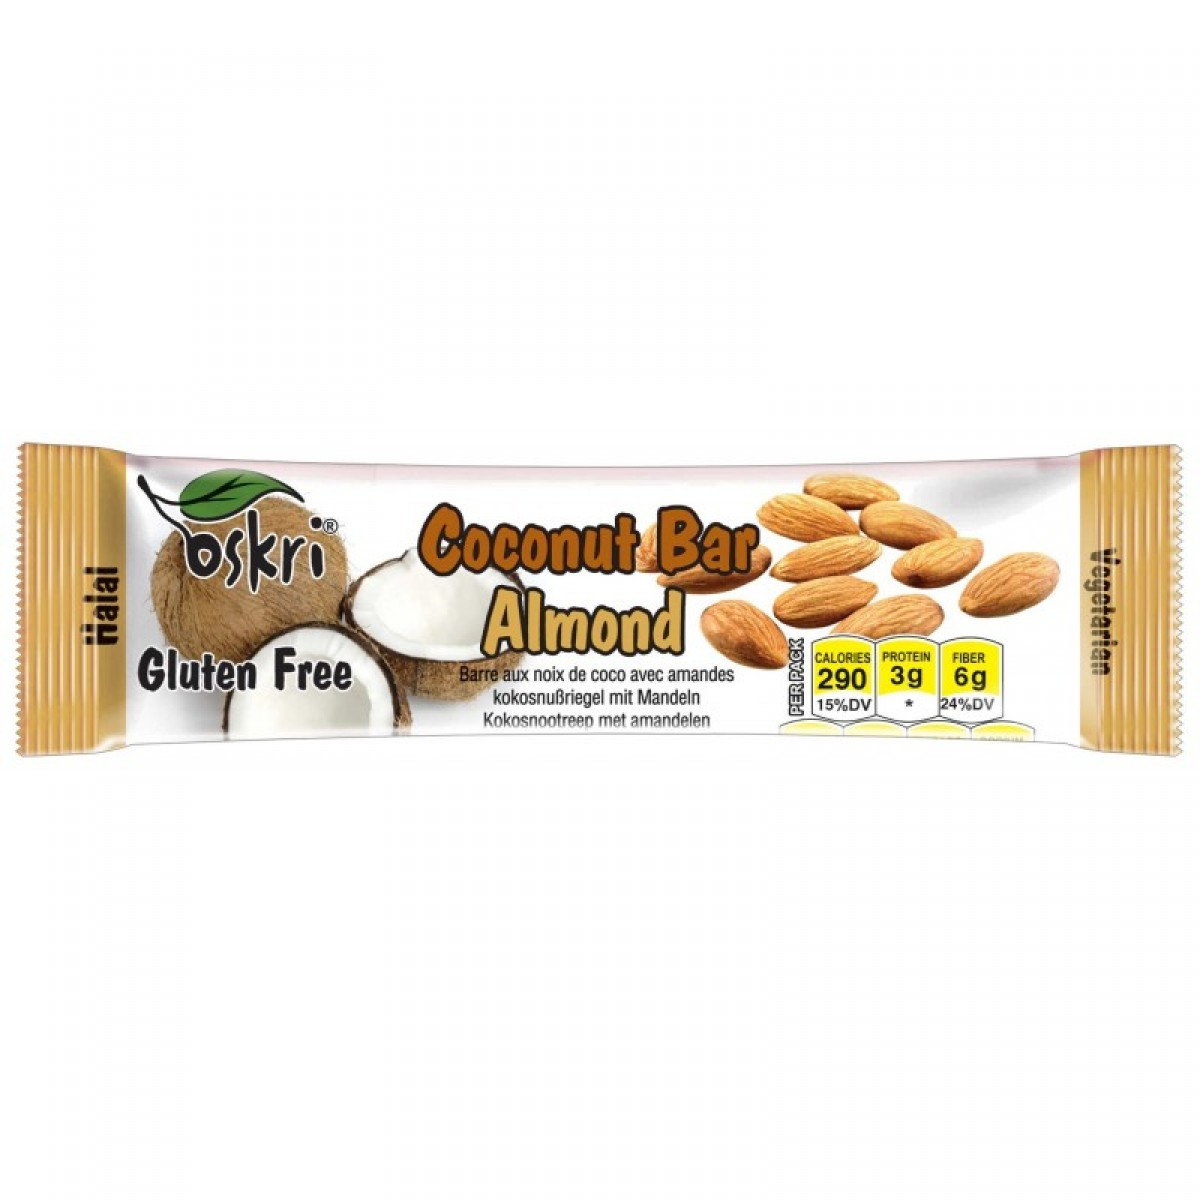 Coconut Bar Almond